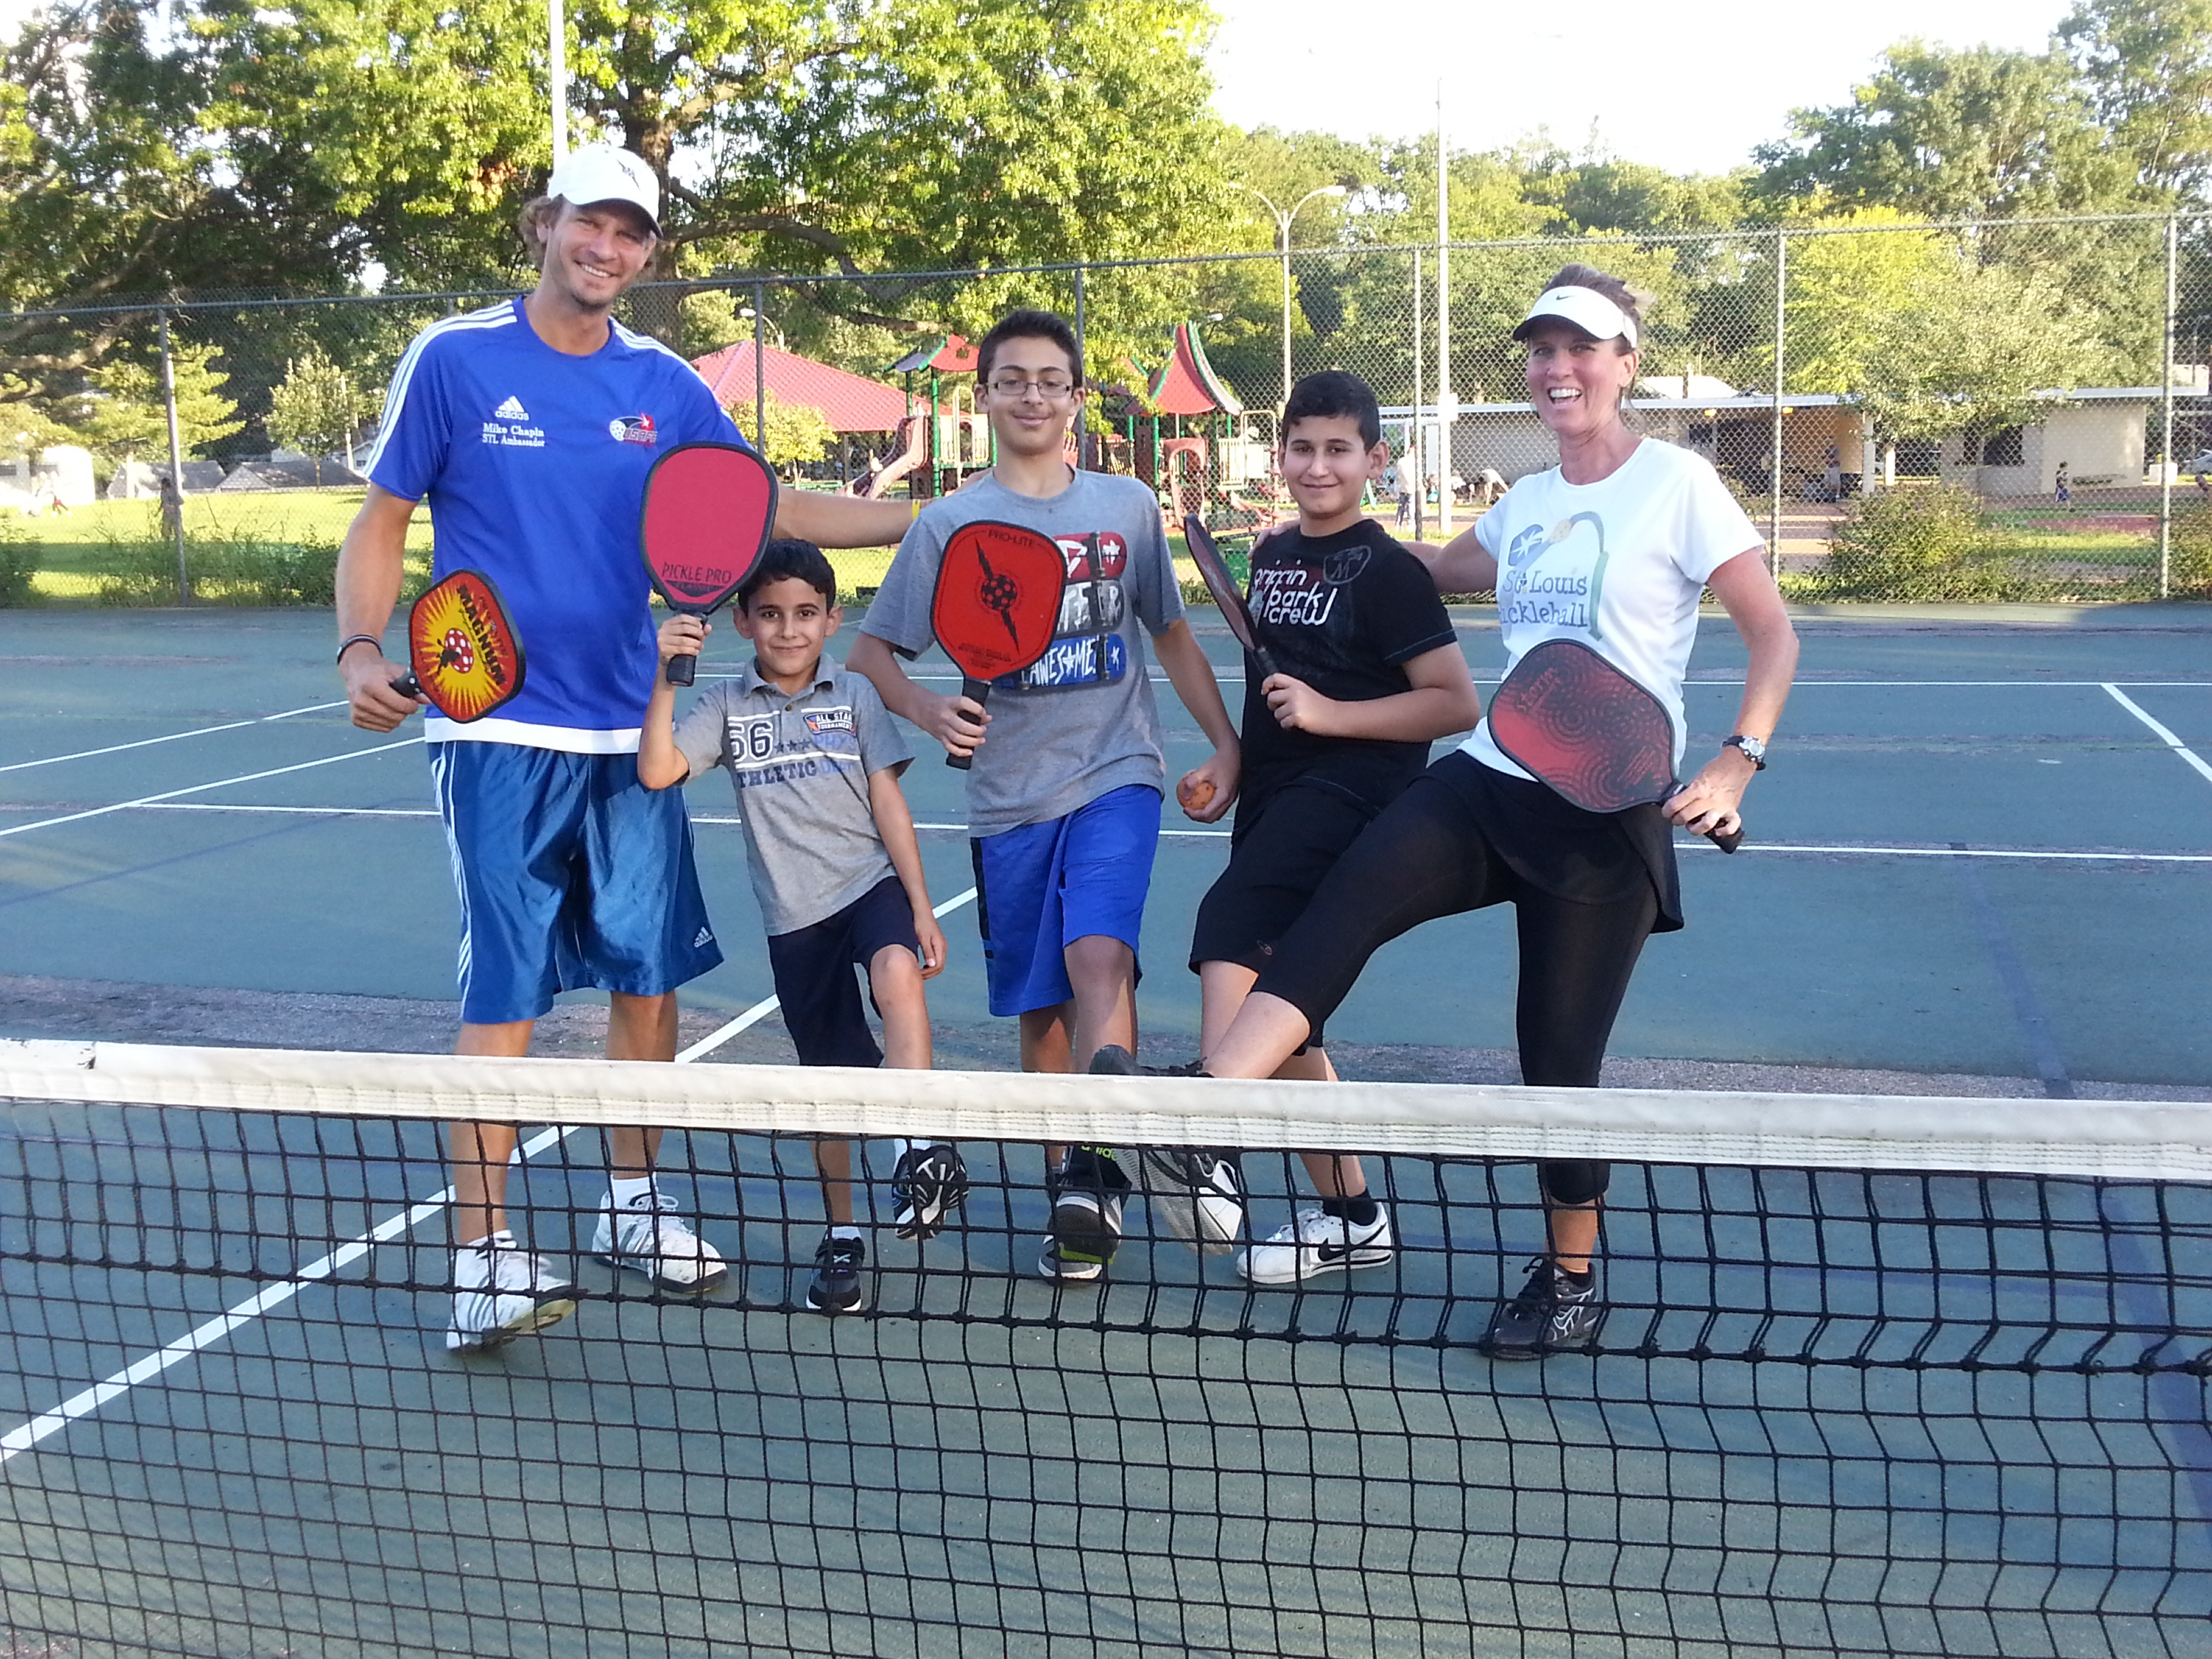 Step up and play some Pickleball!